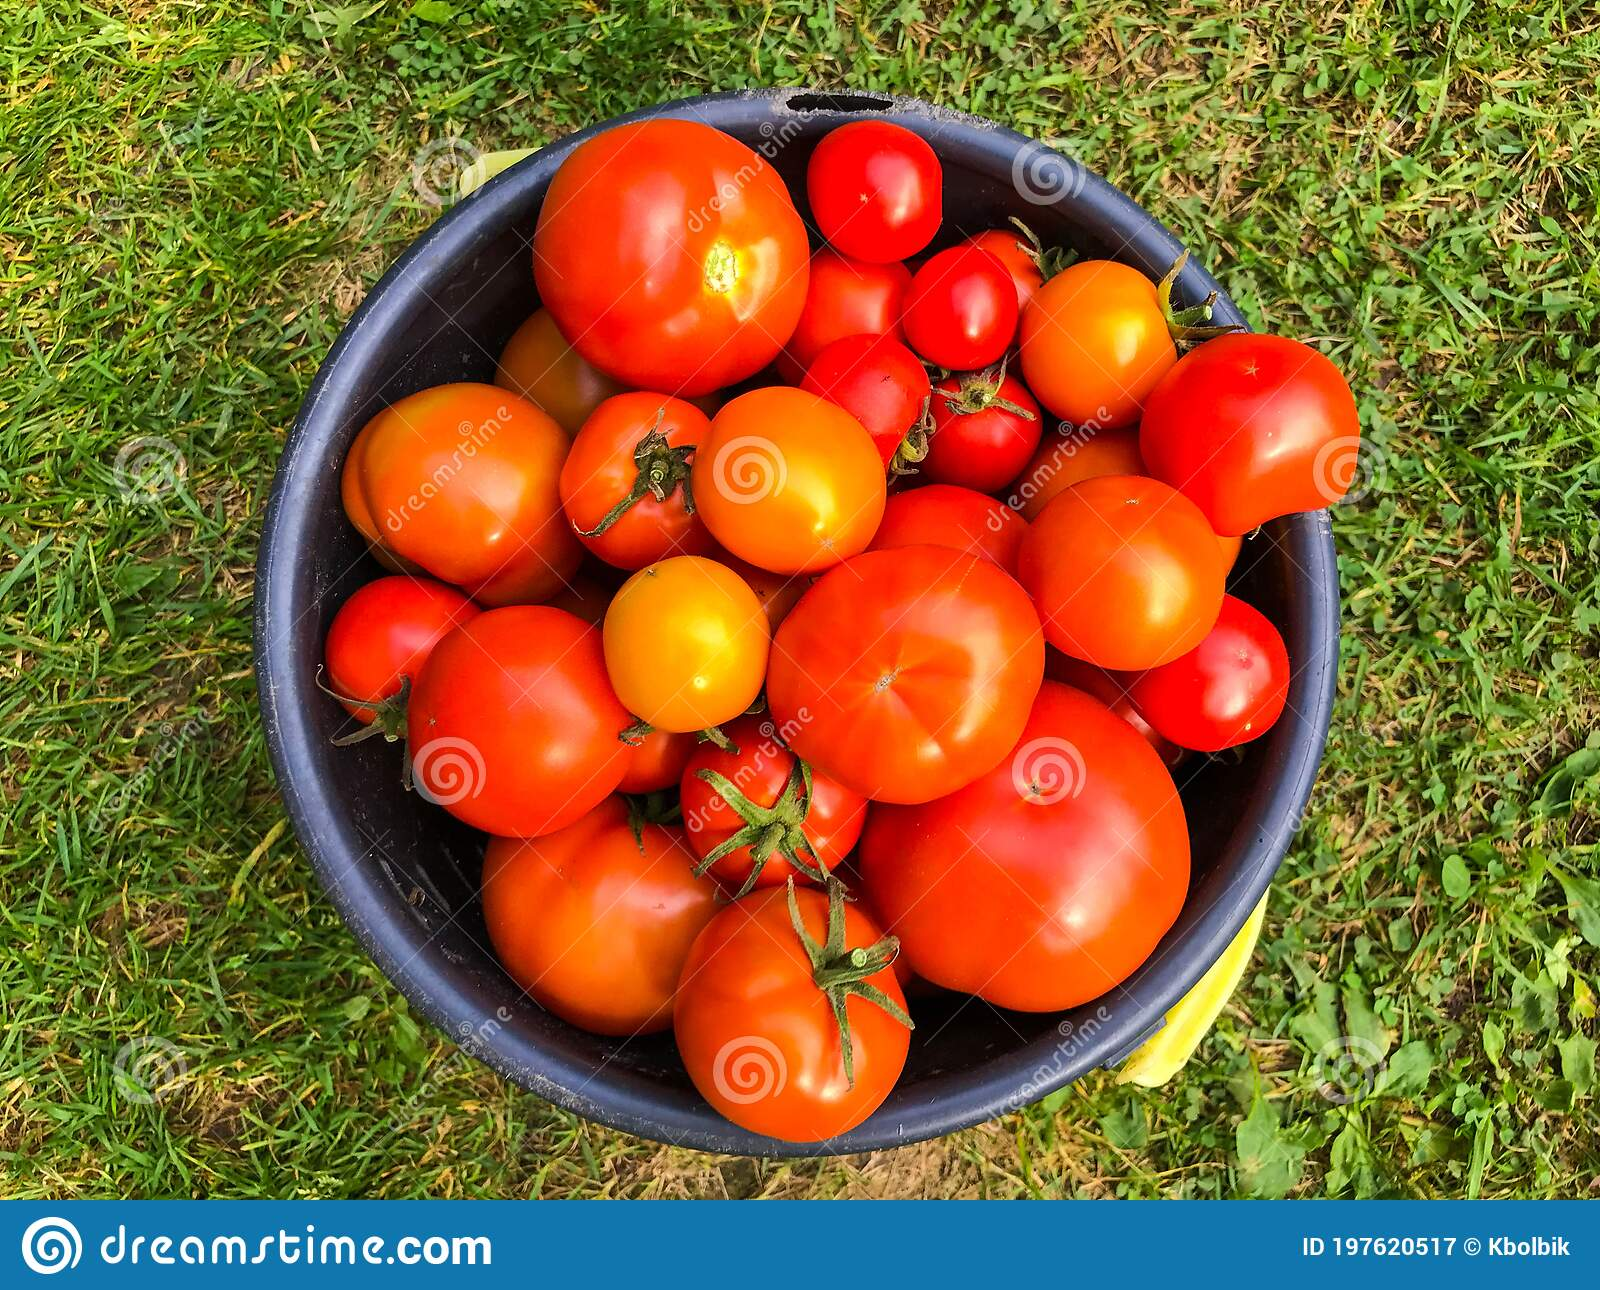 Tomatoes Lie In A Blue Bucket On A Background Of Grass Vegetables Are Collected From Greenhouses And Garden Beds Harvesting In Stock Image Image Of Food Leaf 197620517